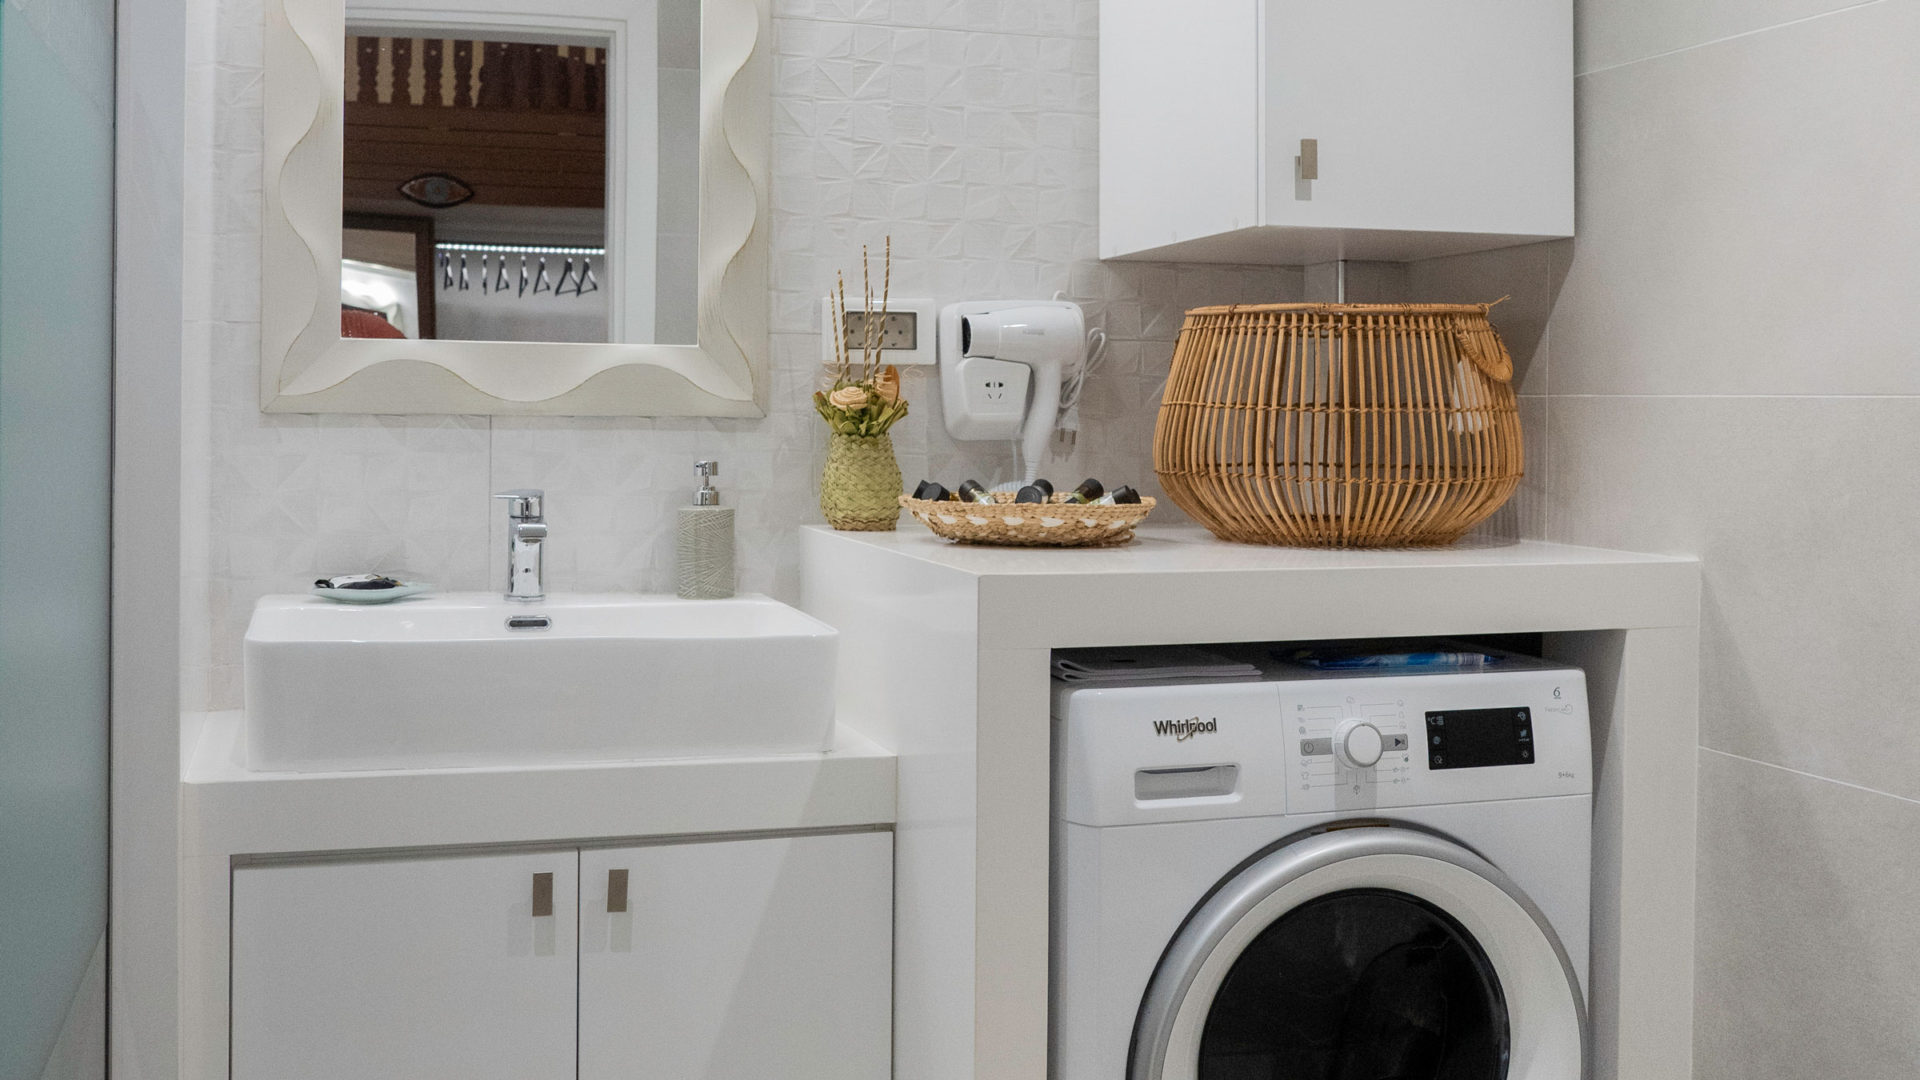 WC with walk-in shower and washing machine